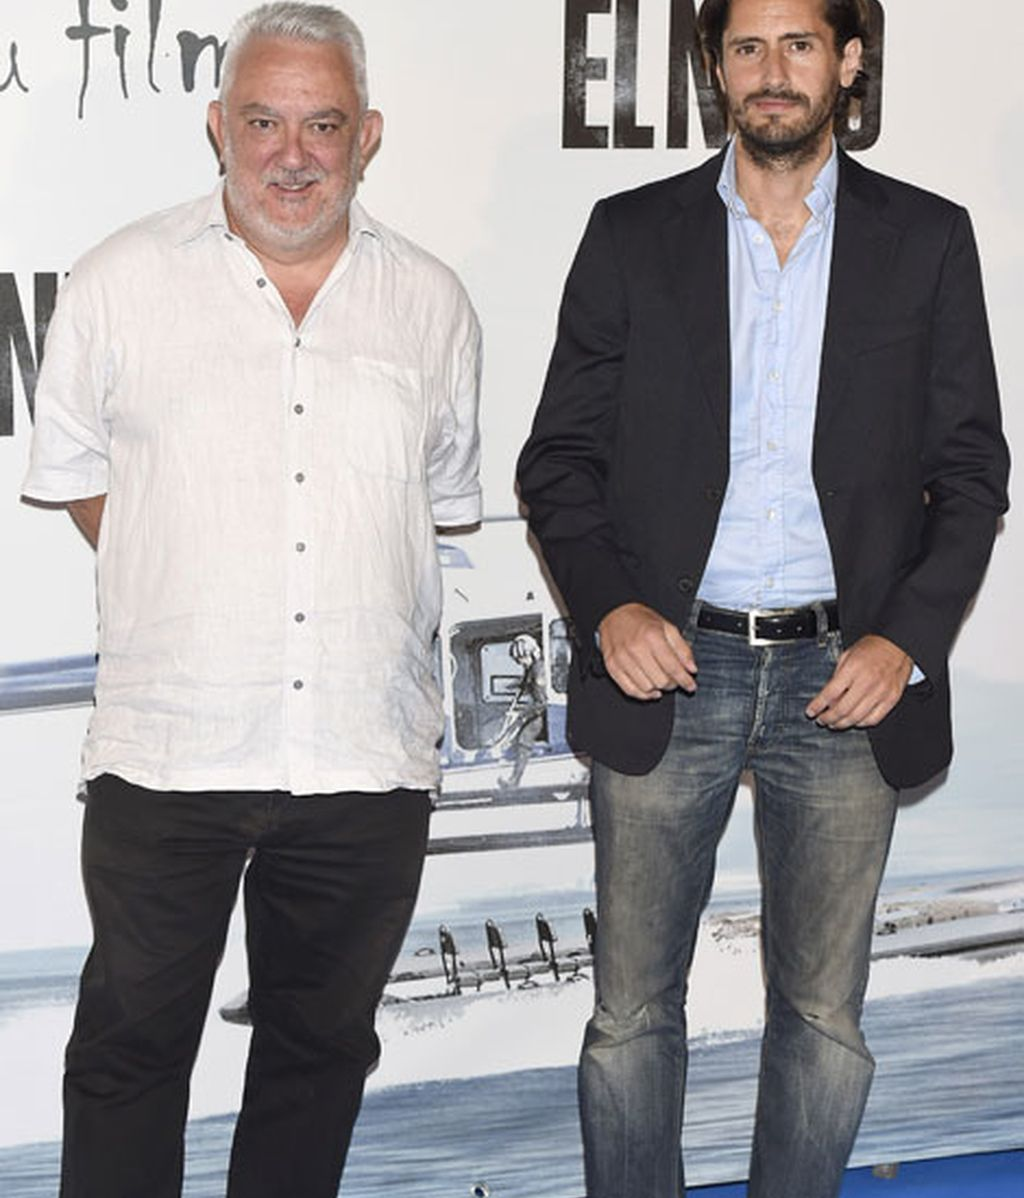 El actor Juan Diego Botto y el director Imanol Uribe